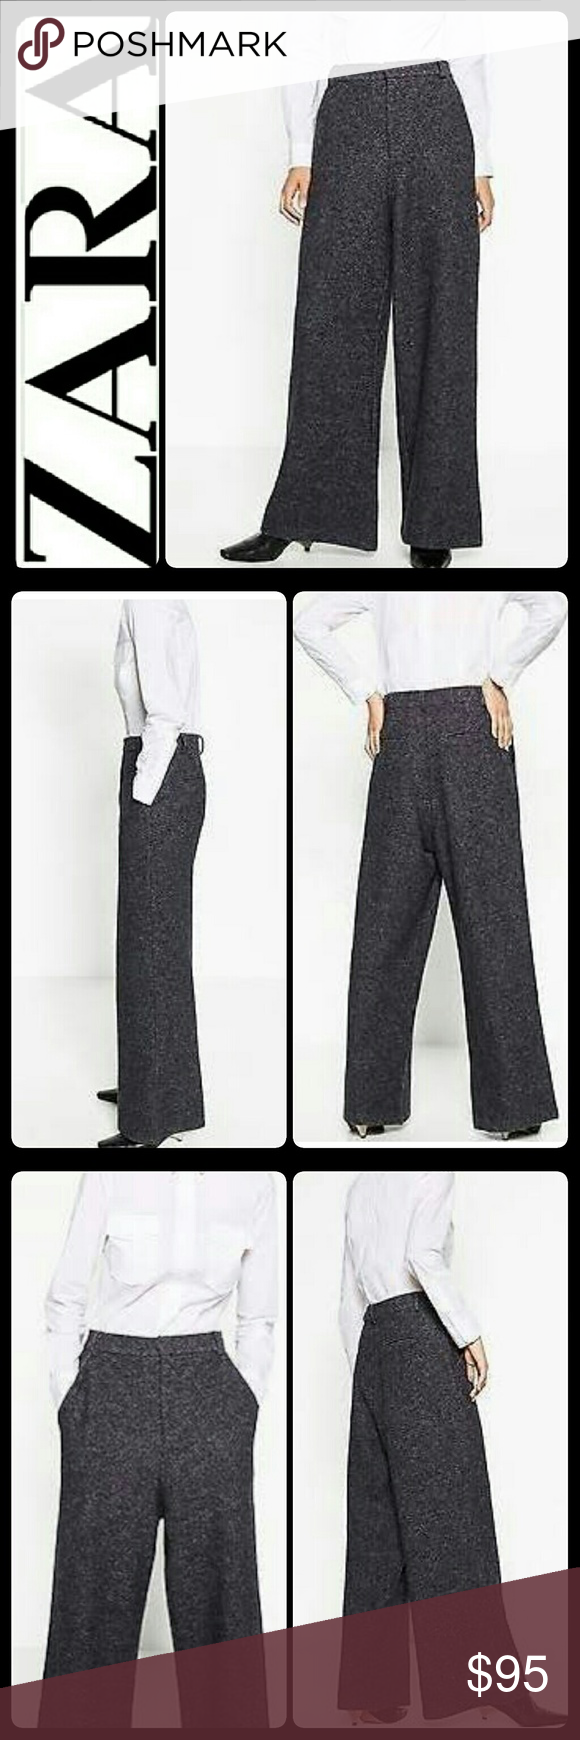 Zara Wool Grey Trousers NEW Zara Signature Brand in Classic Grey Wool Trousers! A Zara Basic Collection with Belt Loops and Side Pockets! Front Hook & Eye and Zipper Closure!  Made in Morocco with Material Blend of Polyester, Viscose, Acrylic and Wool! Size Large, with Inseam About 35 Inches, Waist Measures Approx 16.5 Inches, New! Zara Pants